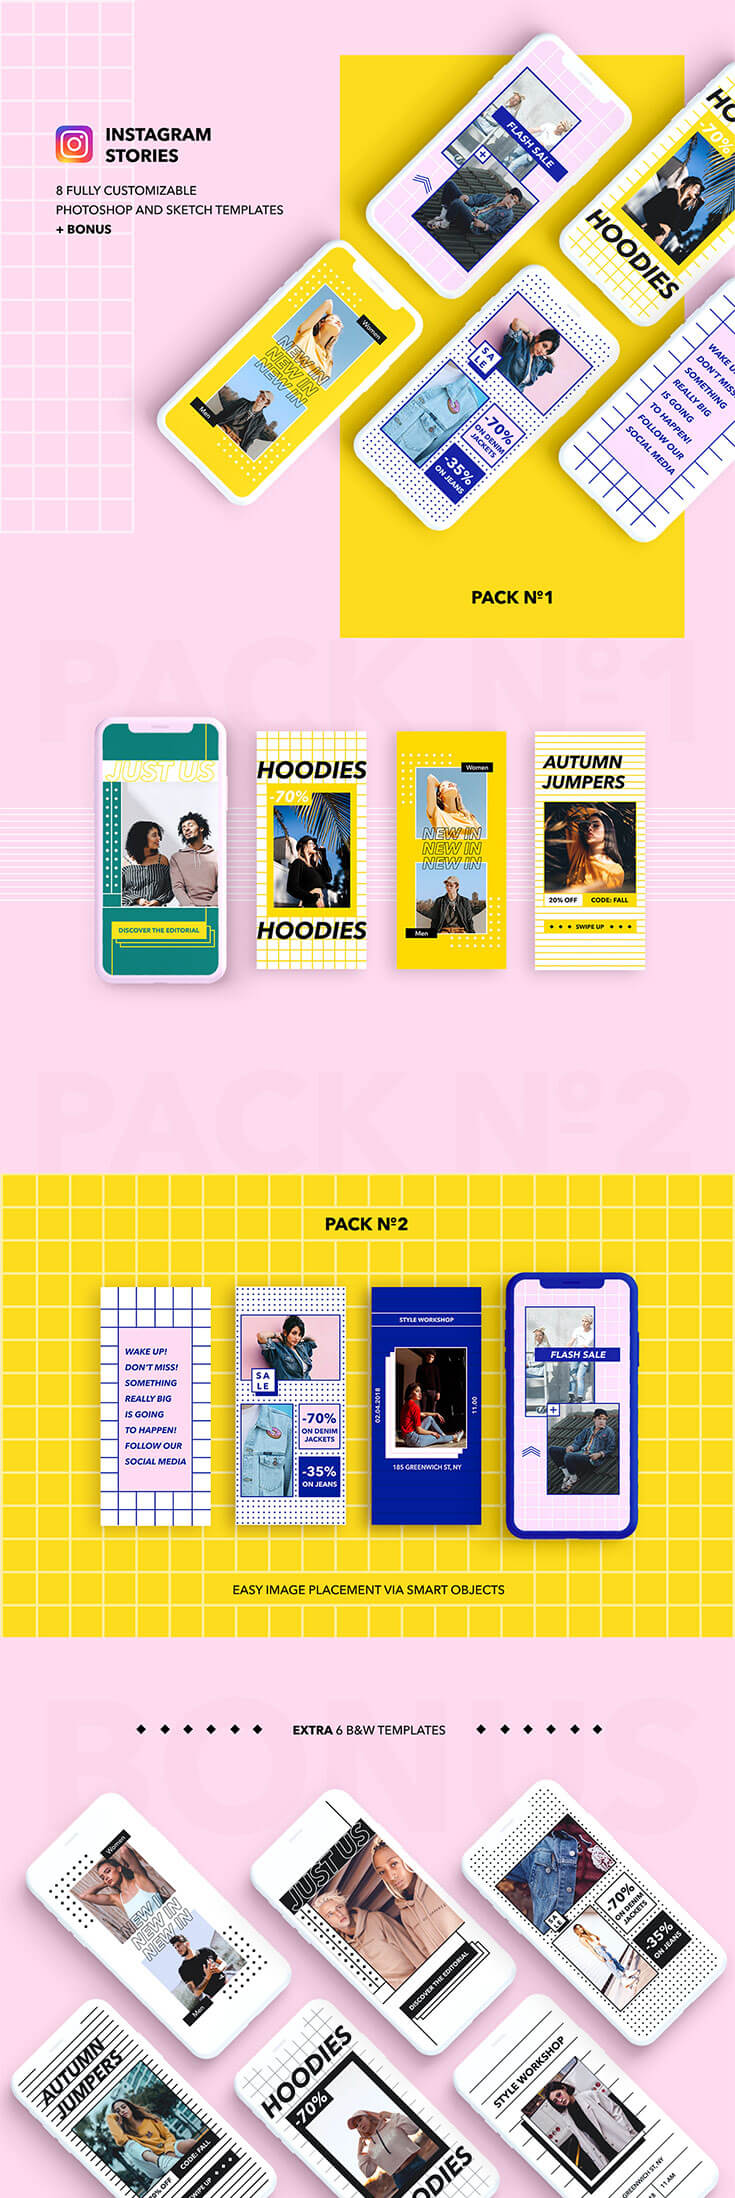 Free #Instagram #Stories #Templates is abeautifultemplate design for online shops. This pack contains 8 templates for Sketch and Photoshop in Black & White, Pink and Blue, Yellow color palettes. It is available in PSD format, you can edit or change the colour of all the elements included in it. These templates arevery easy to use and customization is supported. It is also can be useful for promotional banner or advertising beyondInstagram.